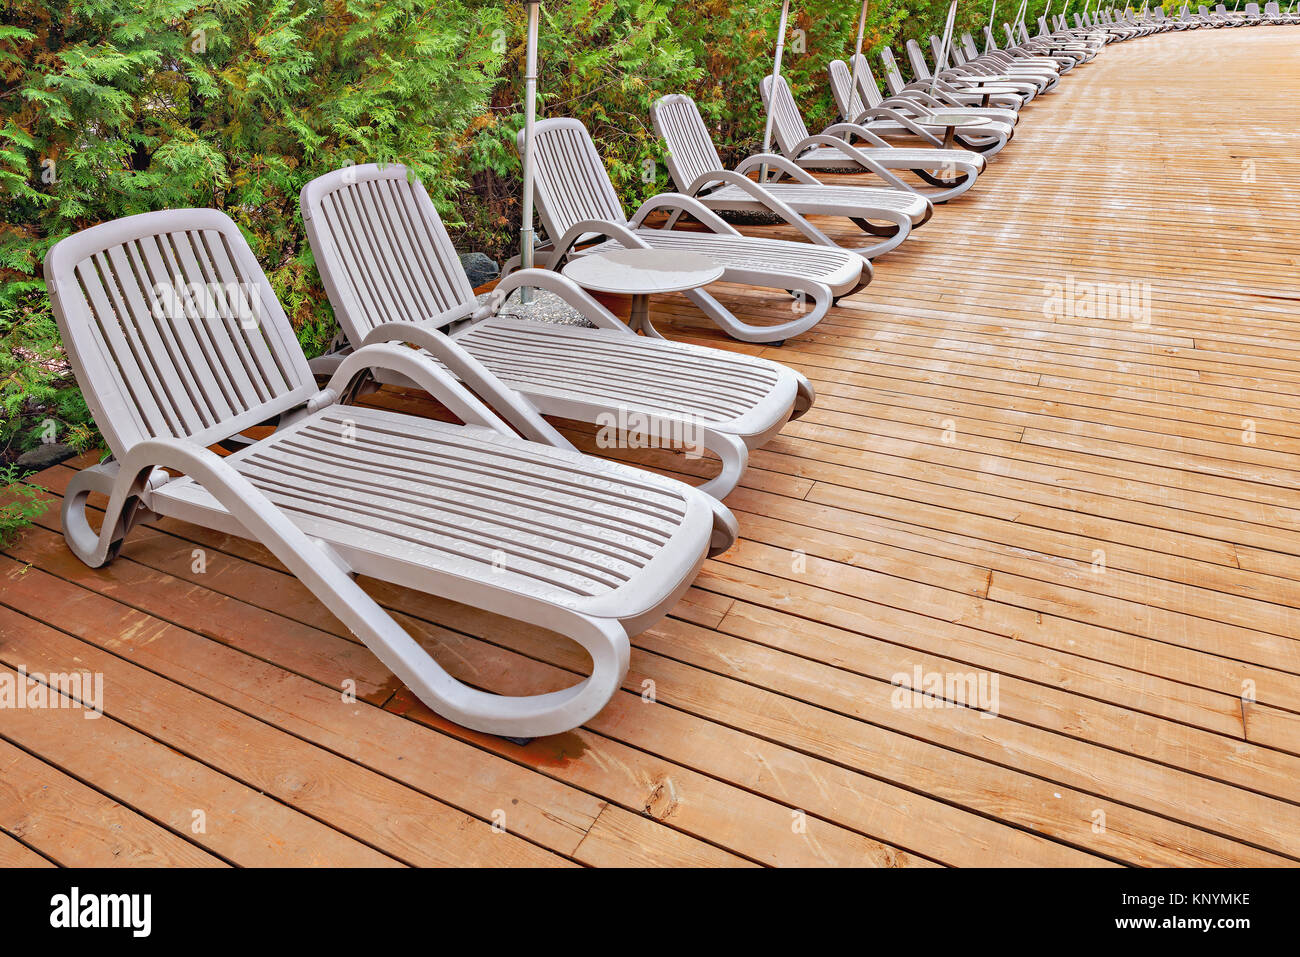 Many chaise-longues by the swimming pool on the hotel territory. - Stock Image